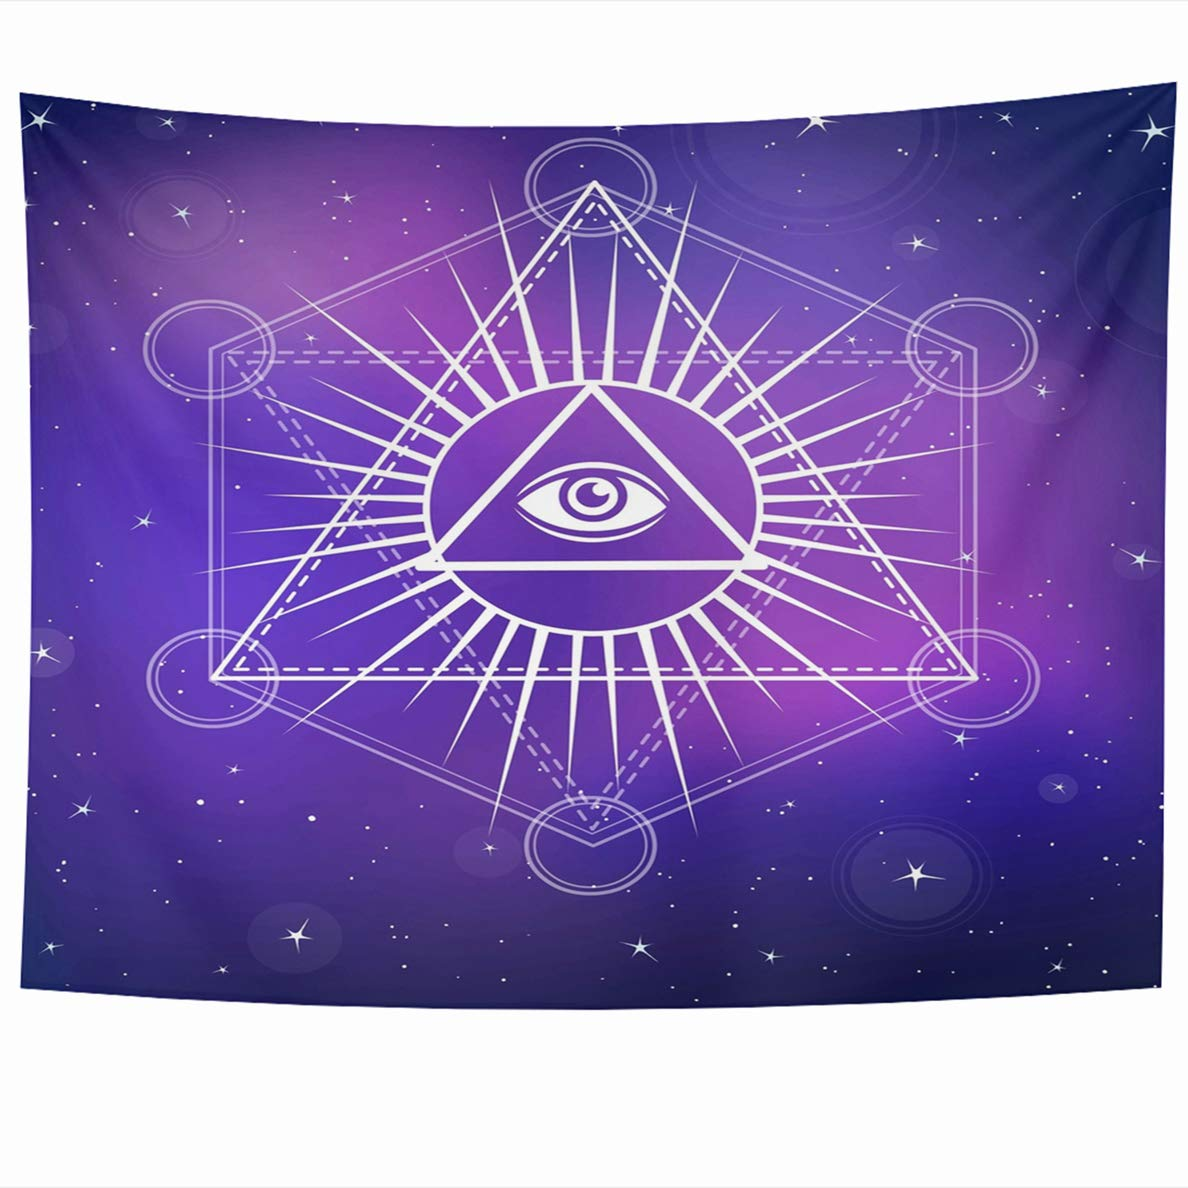 Ahawoso Tapestry 60x50 Inches Retro Technology Cogwheels Gears Abstract Apparatus Set Design Wall Hanging Home Decor Tapestries for Living Room Bedroom Dorm